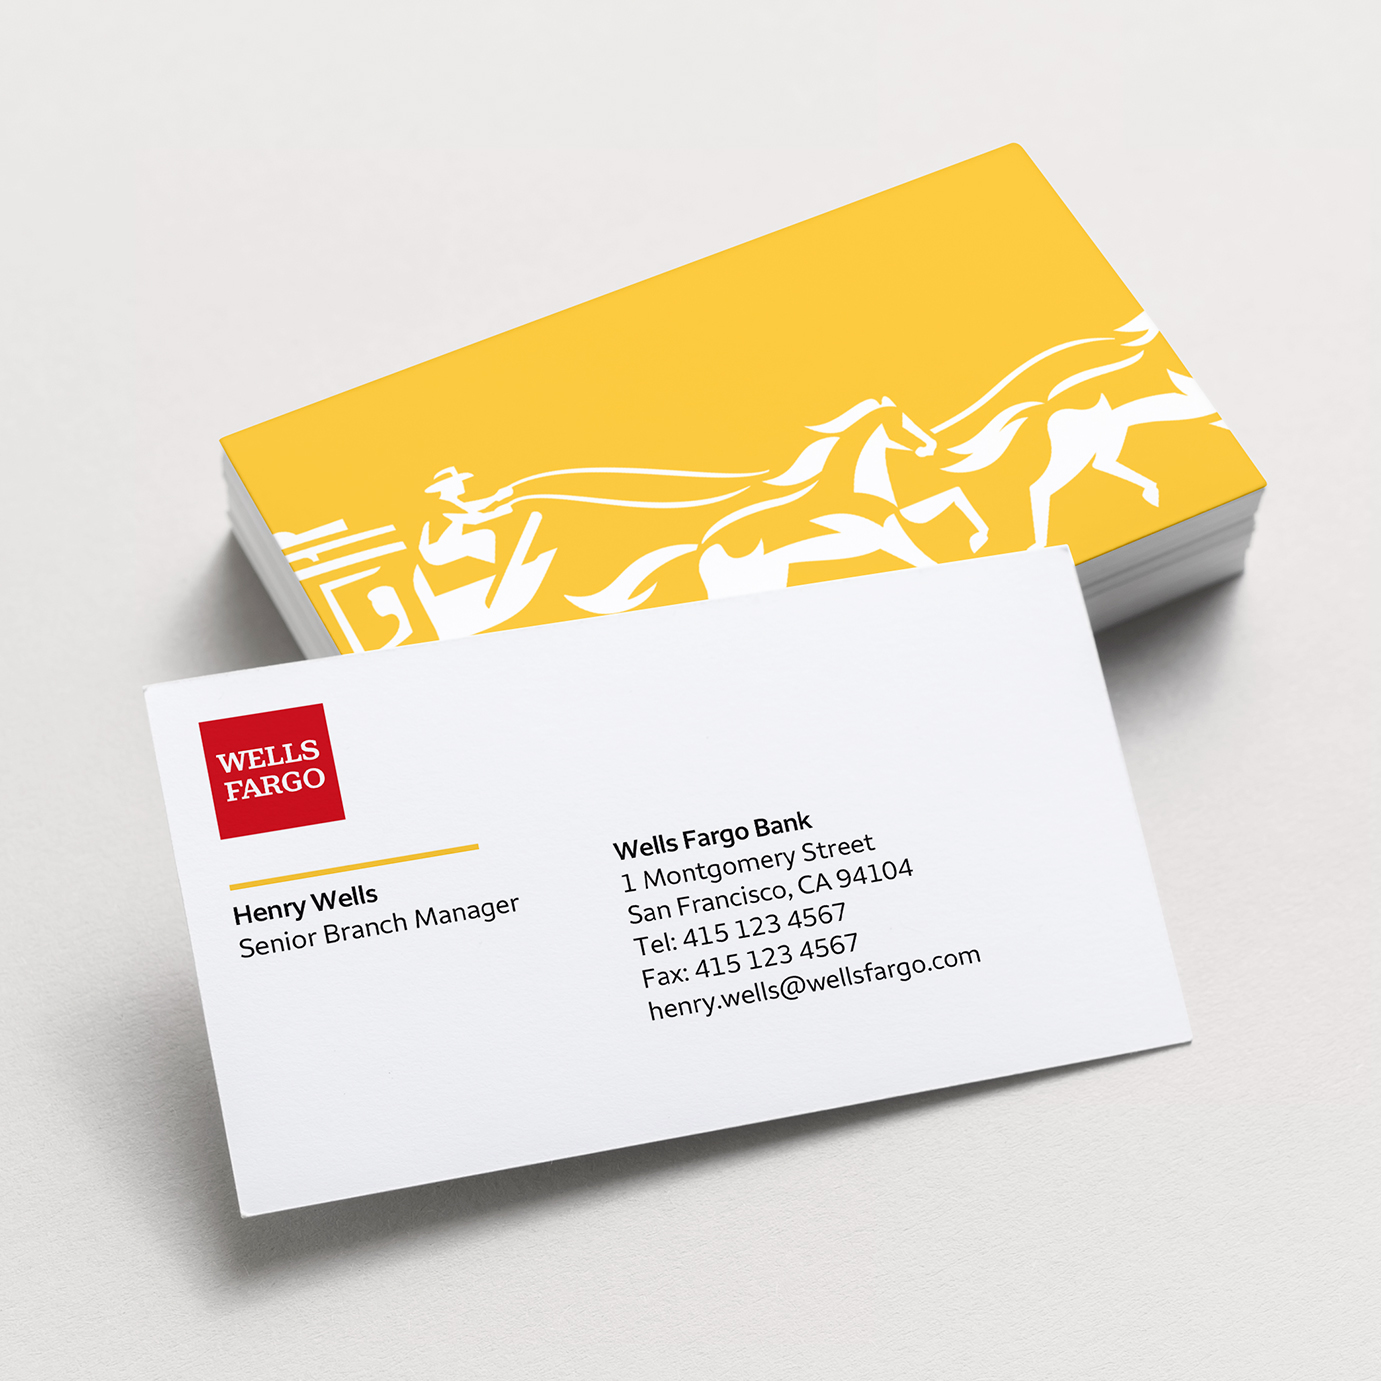 6.1-Business-card-2.jpg